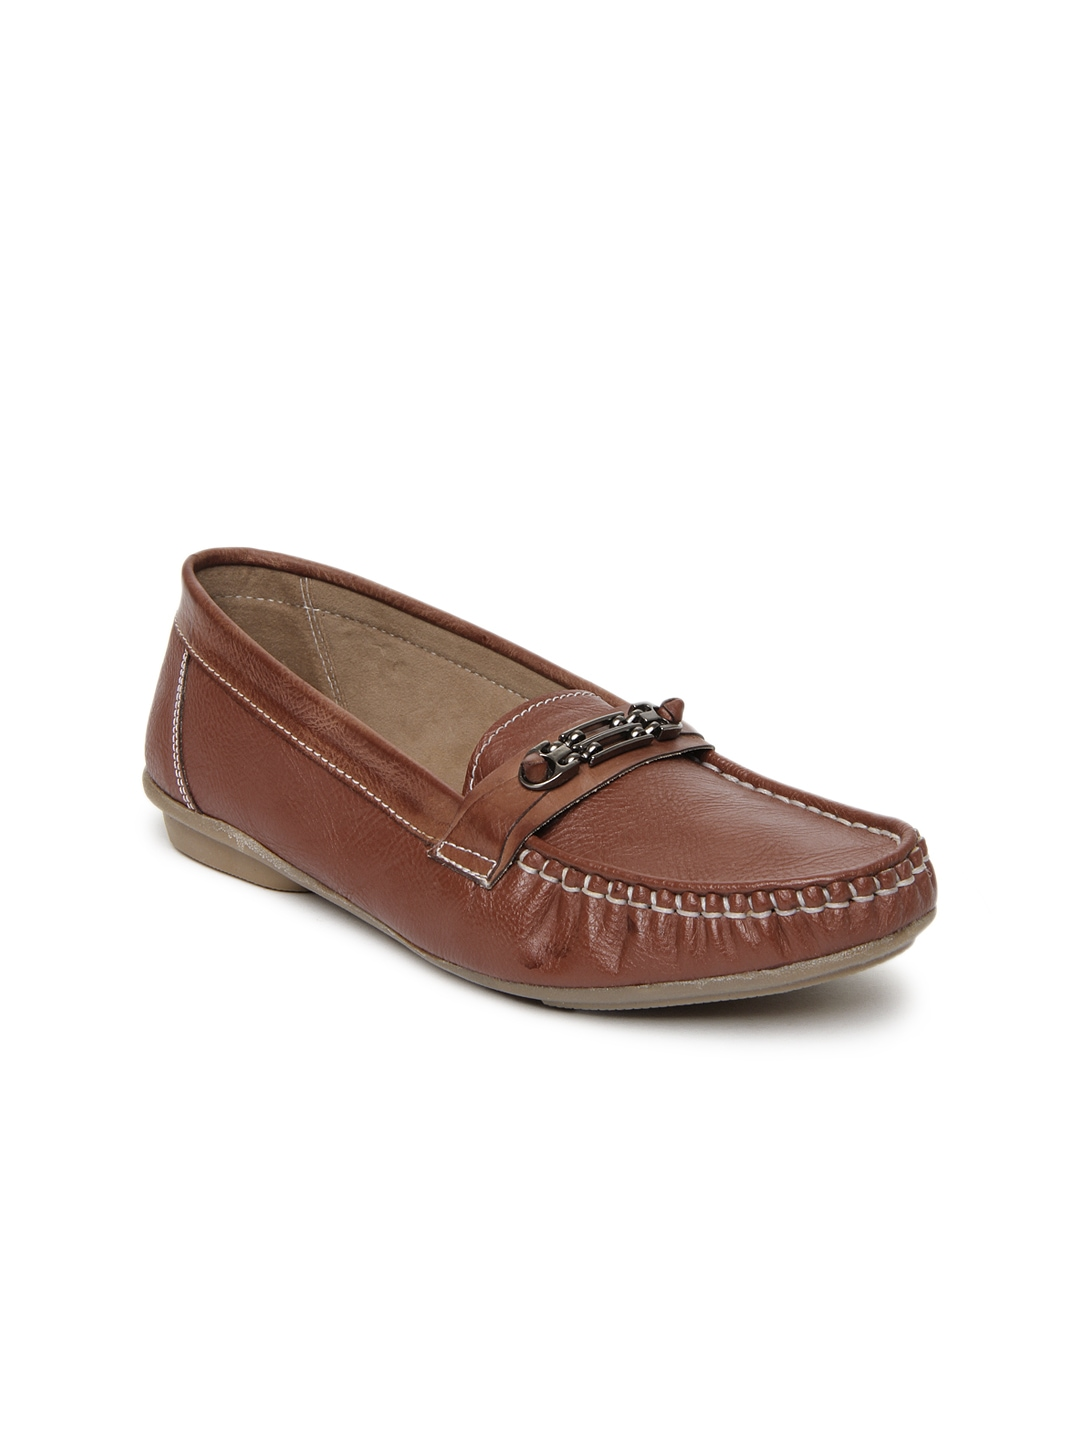 Brown Womens Flats Sale: Save Up to 50% Off! Shop skachat-clas.cf's huge selection of Brown Flats for Women - Over styles available. FREE Shipping & Exchanges, and a % price guarantee!